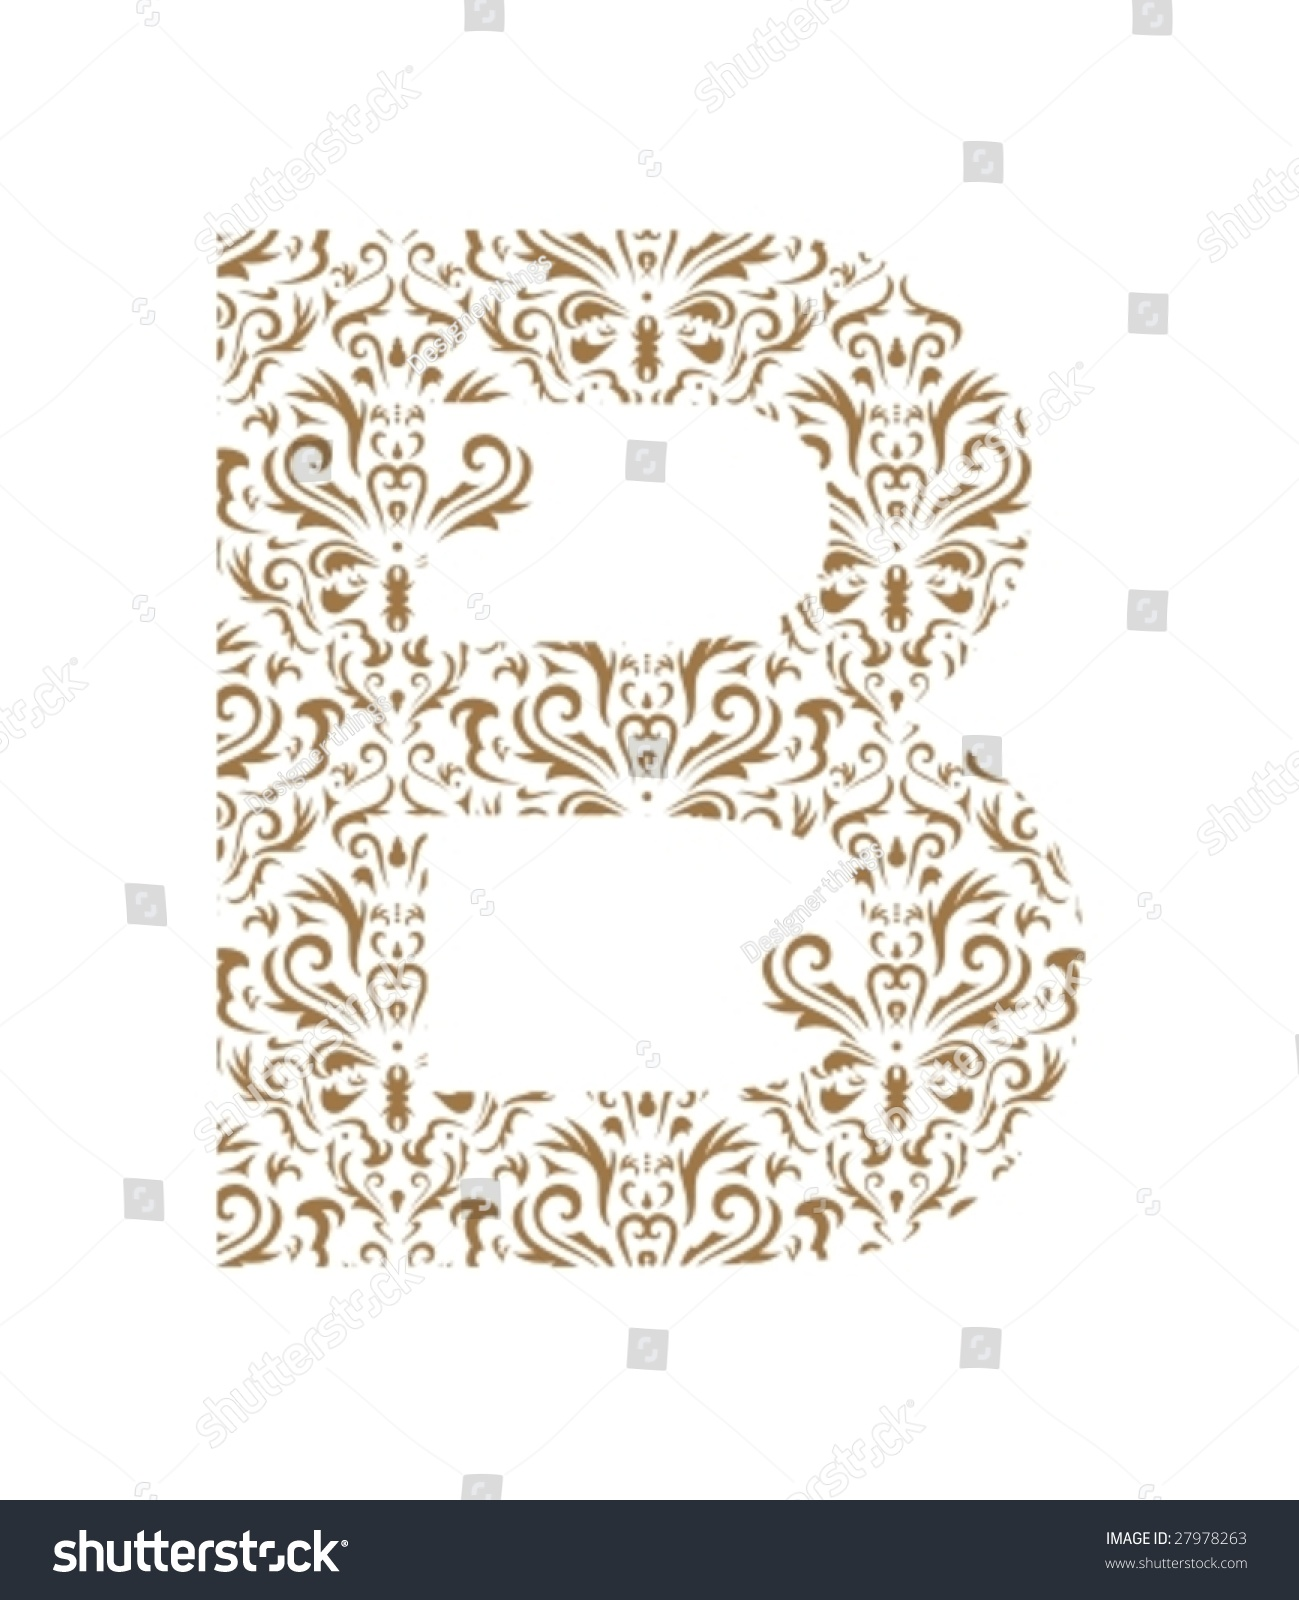 floral letter ornament font stock vector illustration 27978263 shutterstock